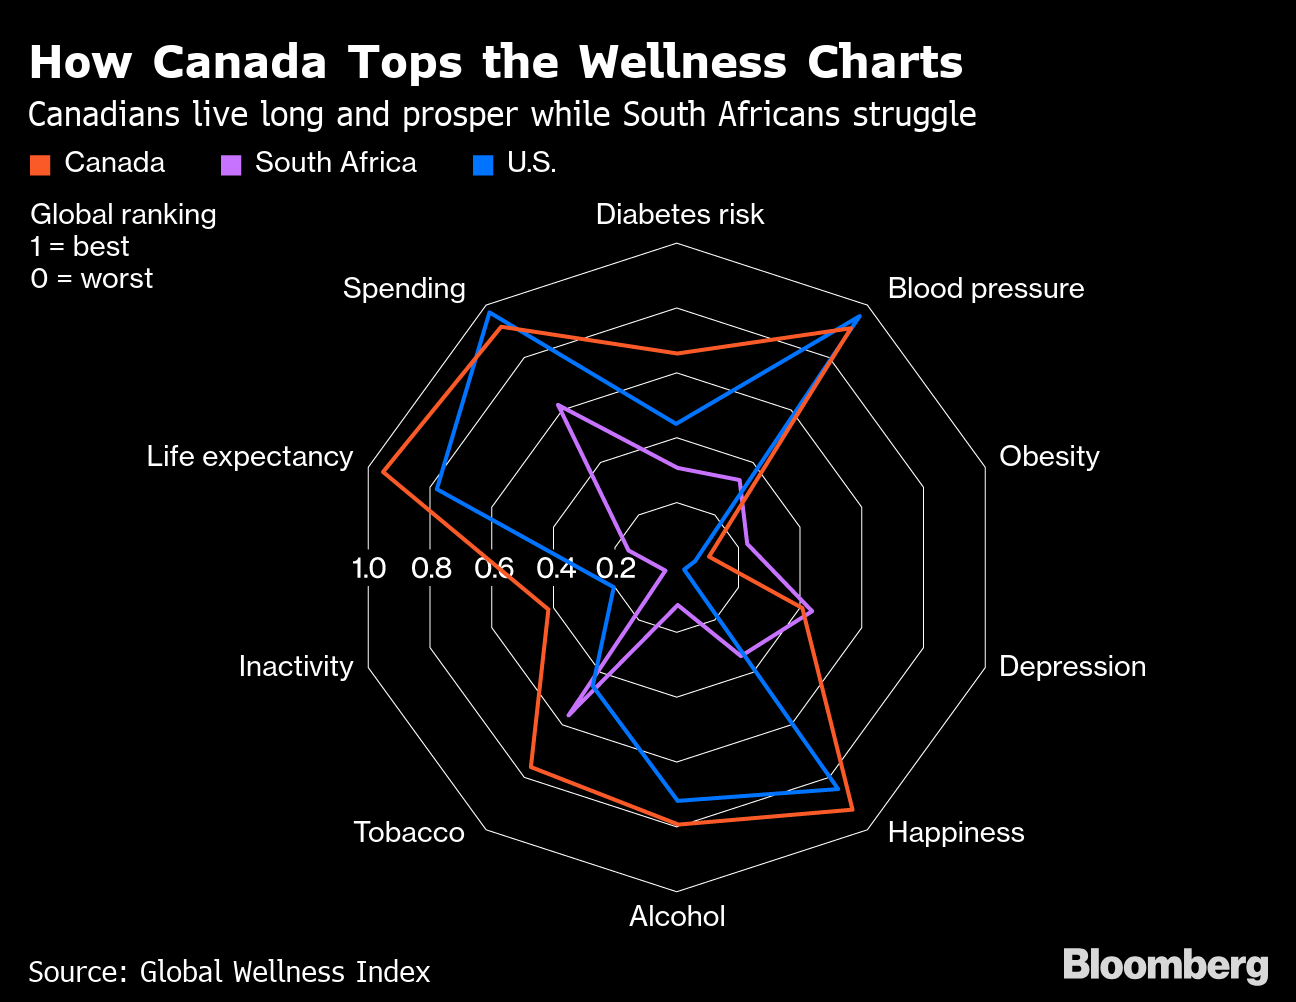 Canada tops the list of healthiest countries in global